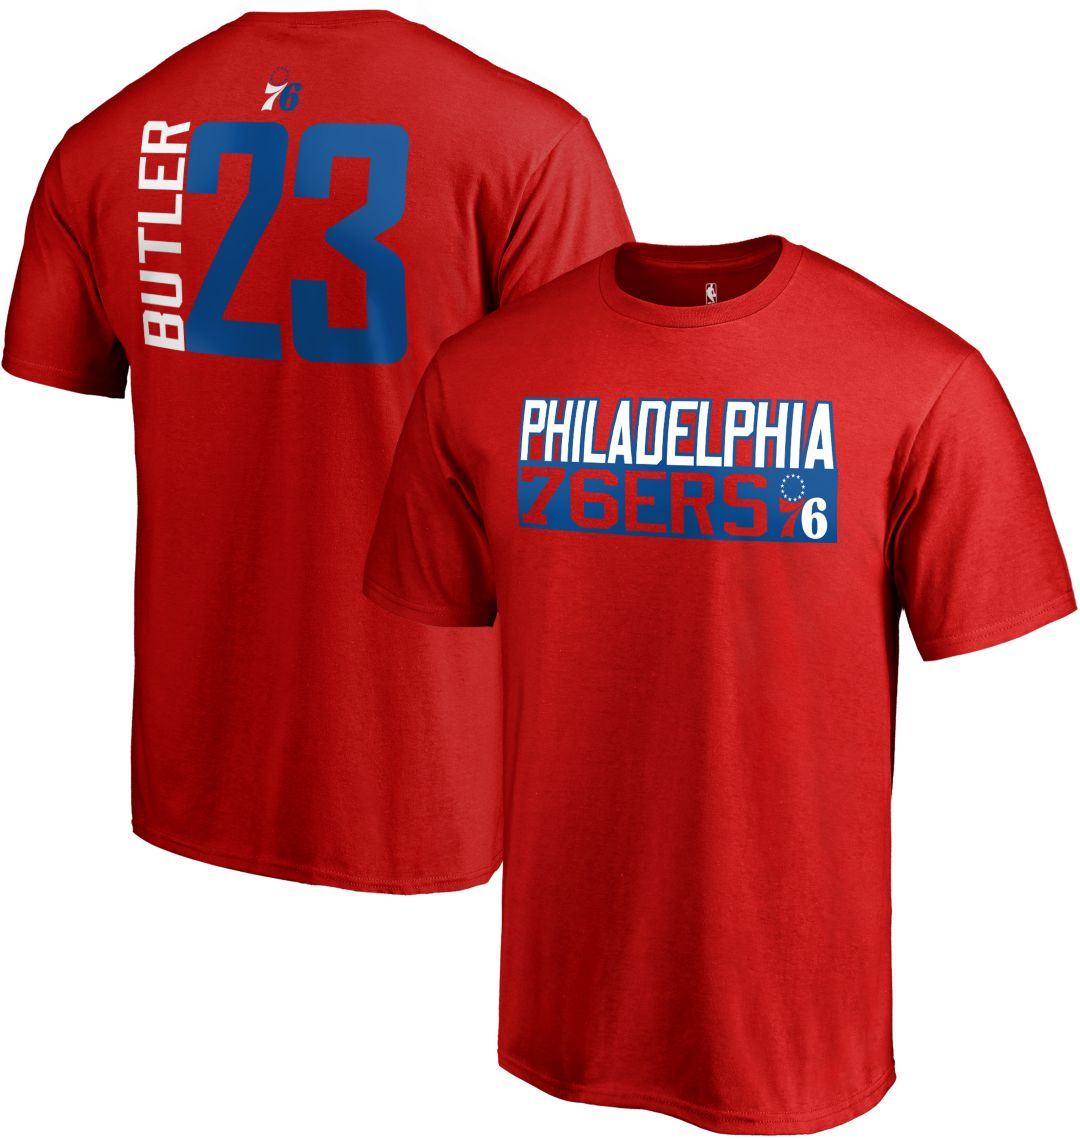 reputable site 0e012 1f134 NBA Men's Philadelphia 76ers Jimmy Butler #23 Red T-Shirt